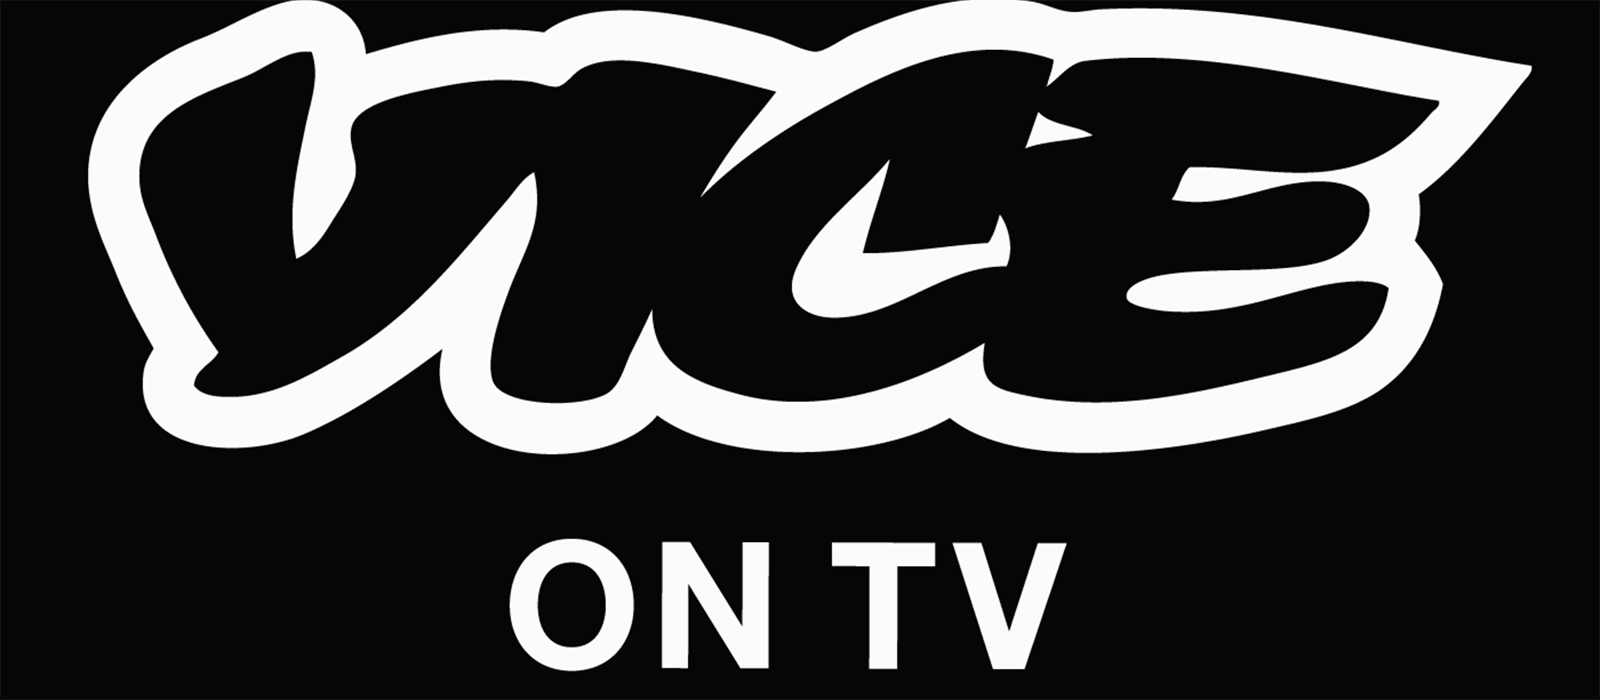 Vice TV Live Stream: How to Watch Vice TV Online for Free